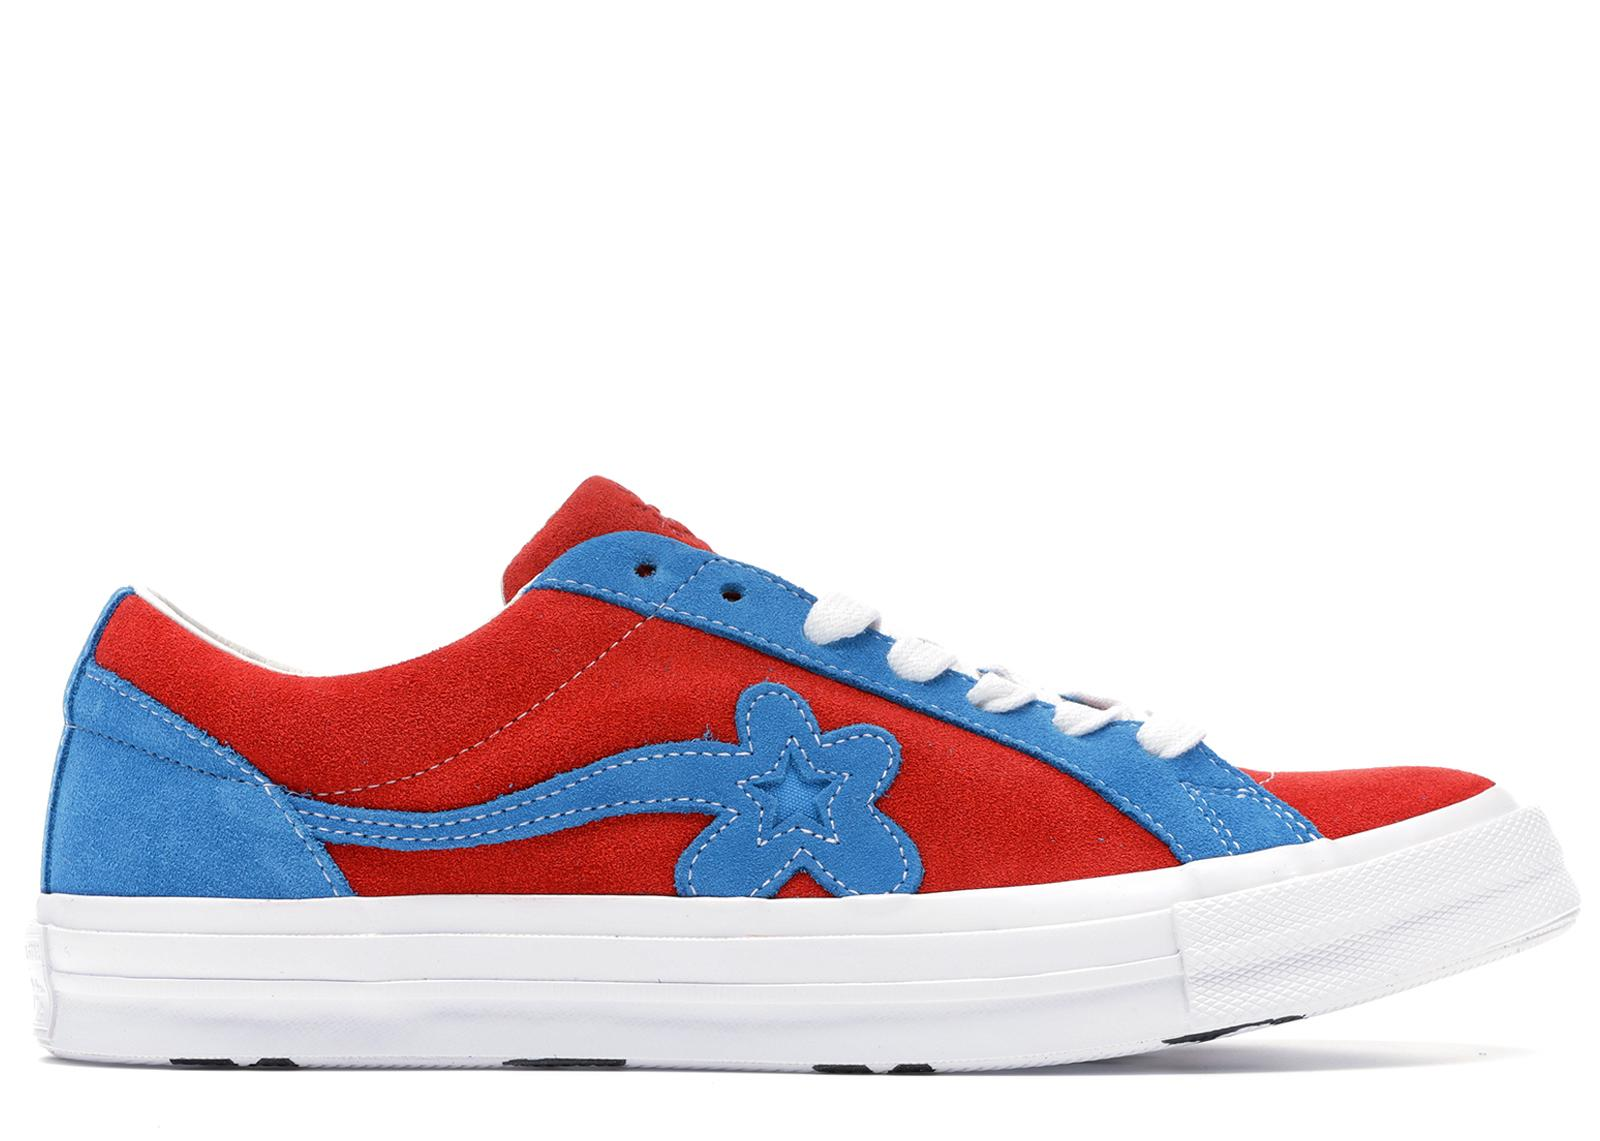 Converse Suede One Star Ox Tyler The Creator Golf Le Fleur Red Blue For Men Lyst